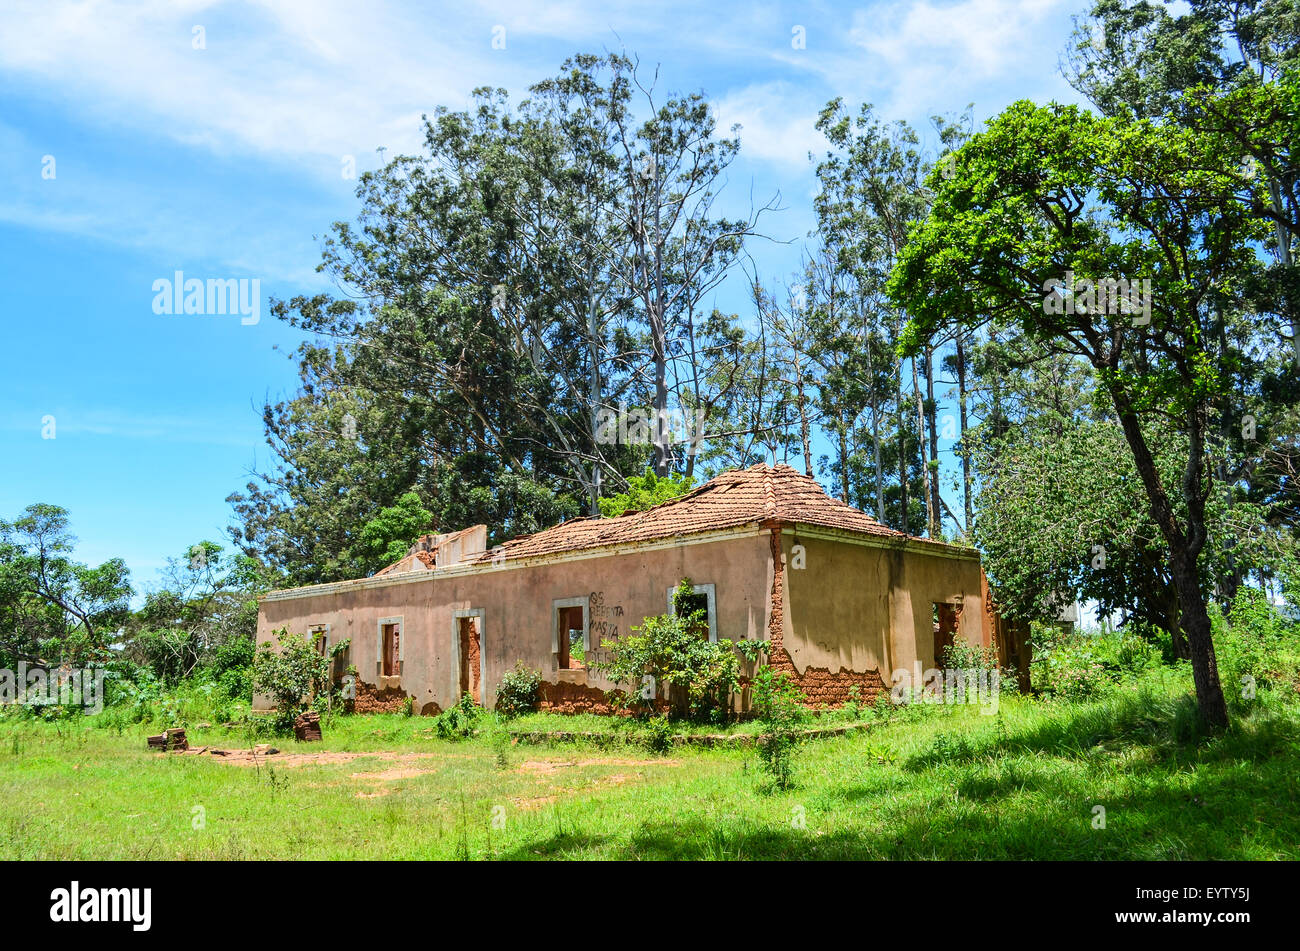 Ruins of a house in Angola - Stock Image